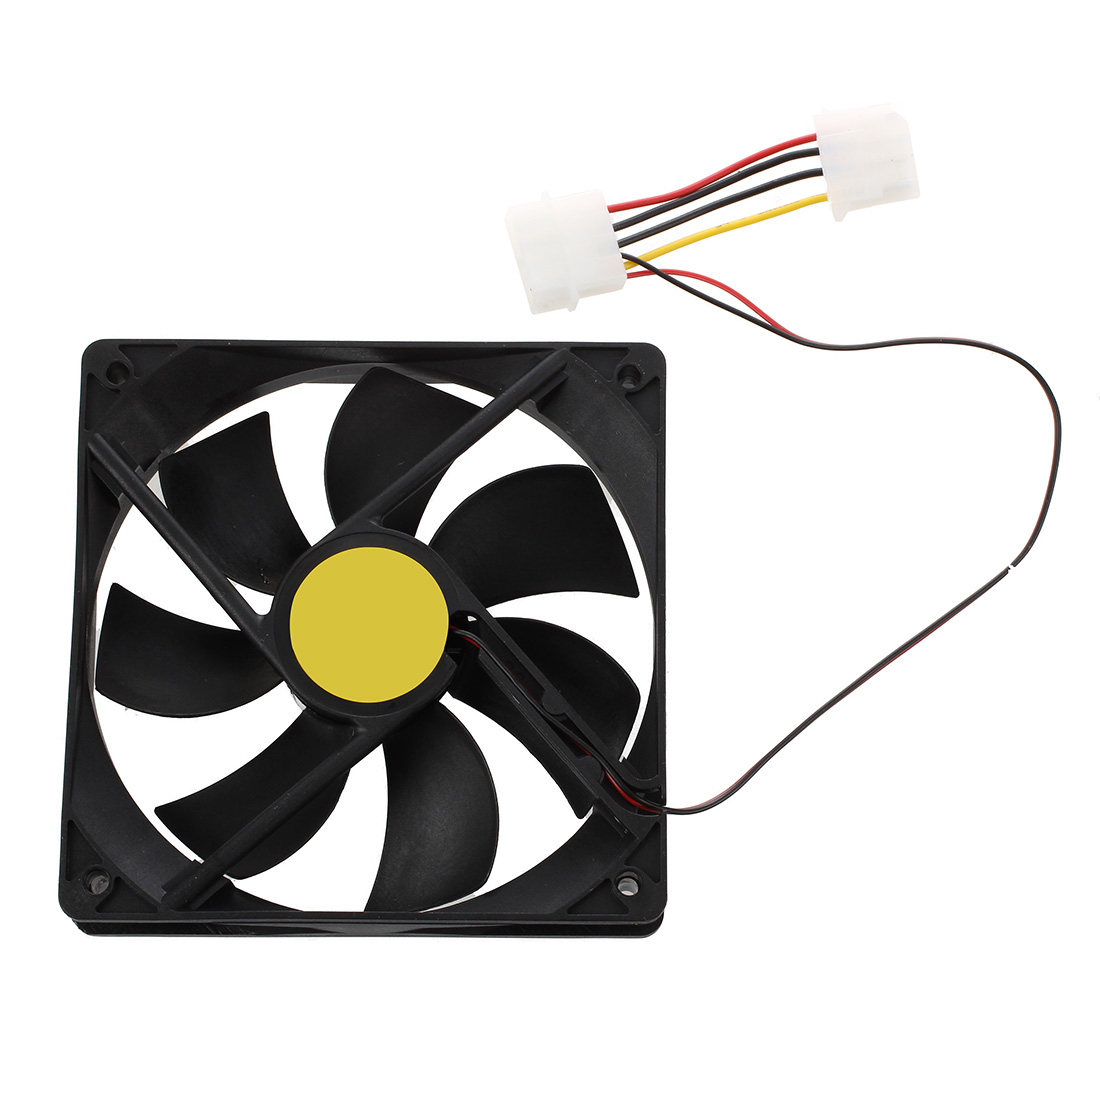 Fan 120mm X 25mm DC 24V 4Pin Sleeve Bearing Computer Case Cooling Quiet Sleeve-bearing Design Ultra Quiet MID Speed Brushless